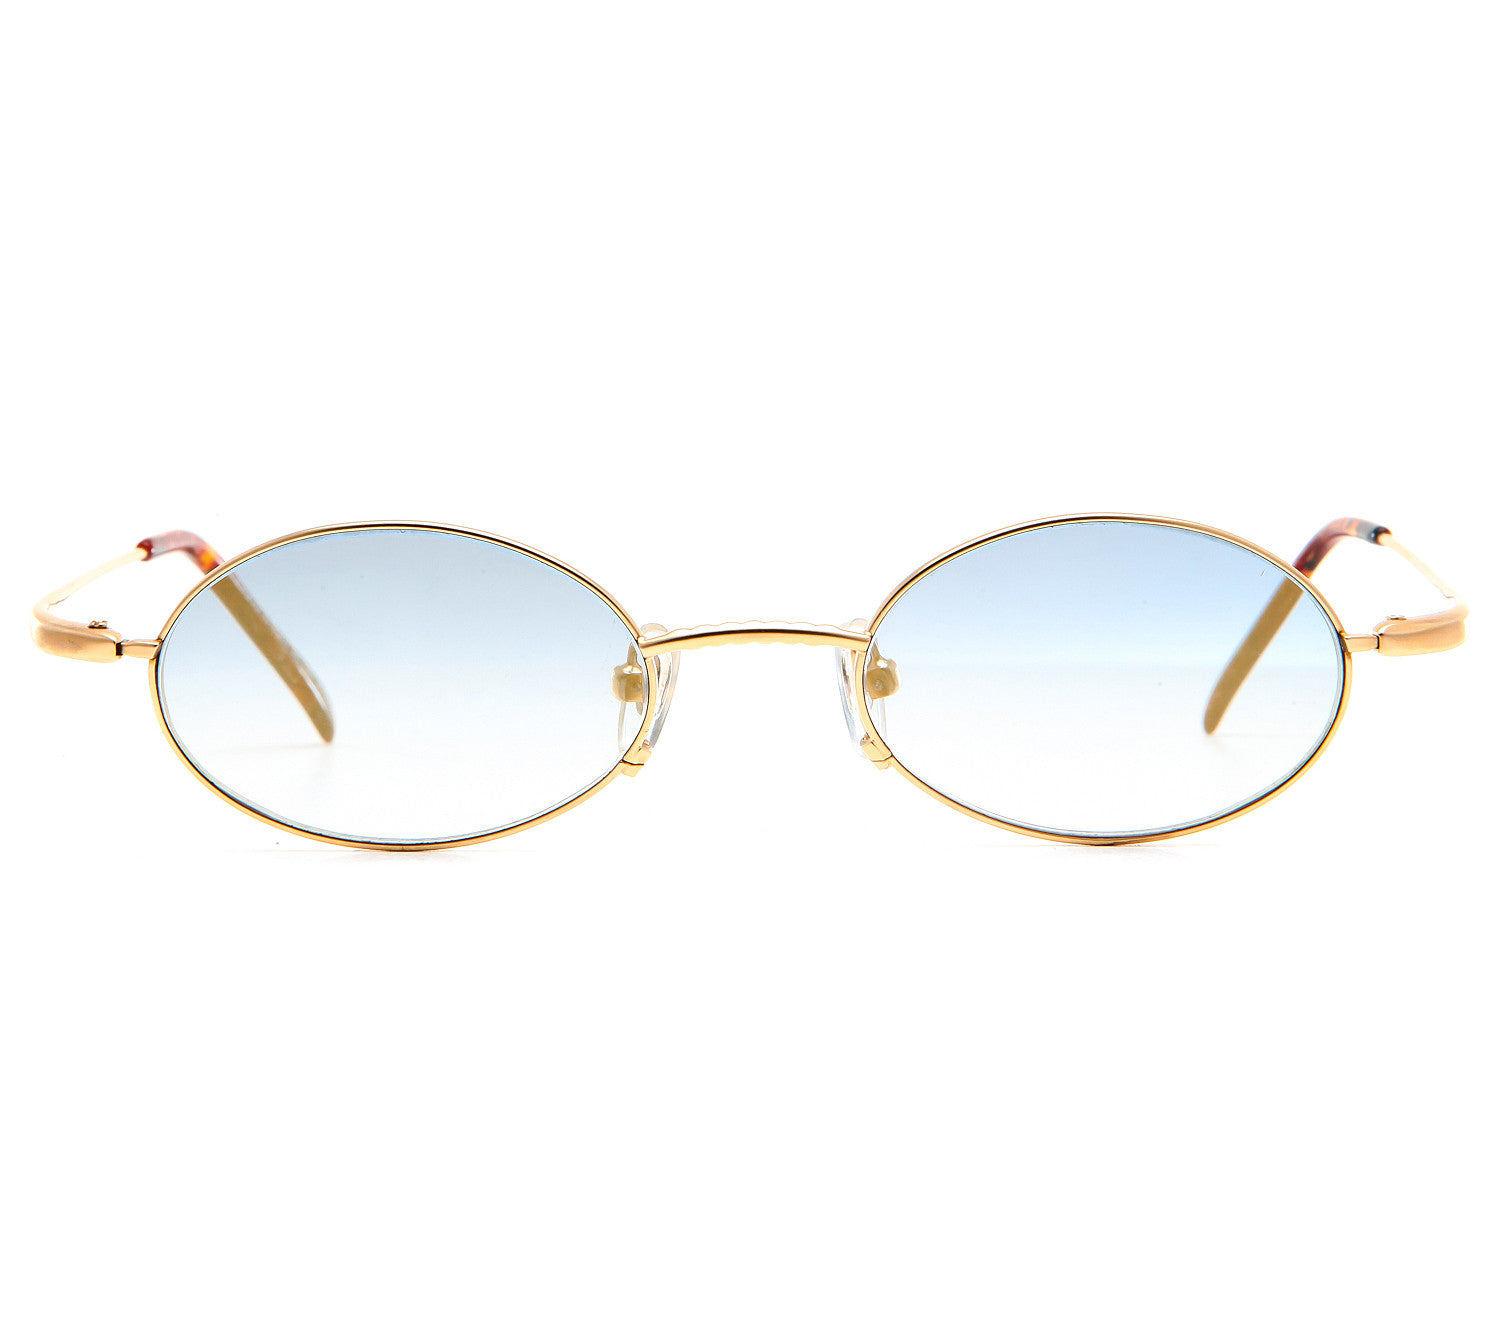 bce1f78c91d Paolo Gucci 7439 HINI 21K Gold Plated Special Edition Flash Gold ...